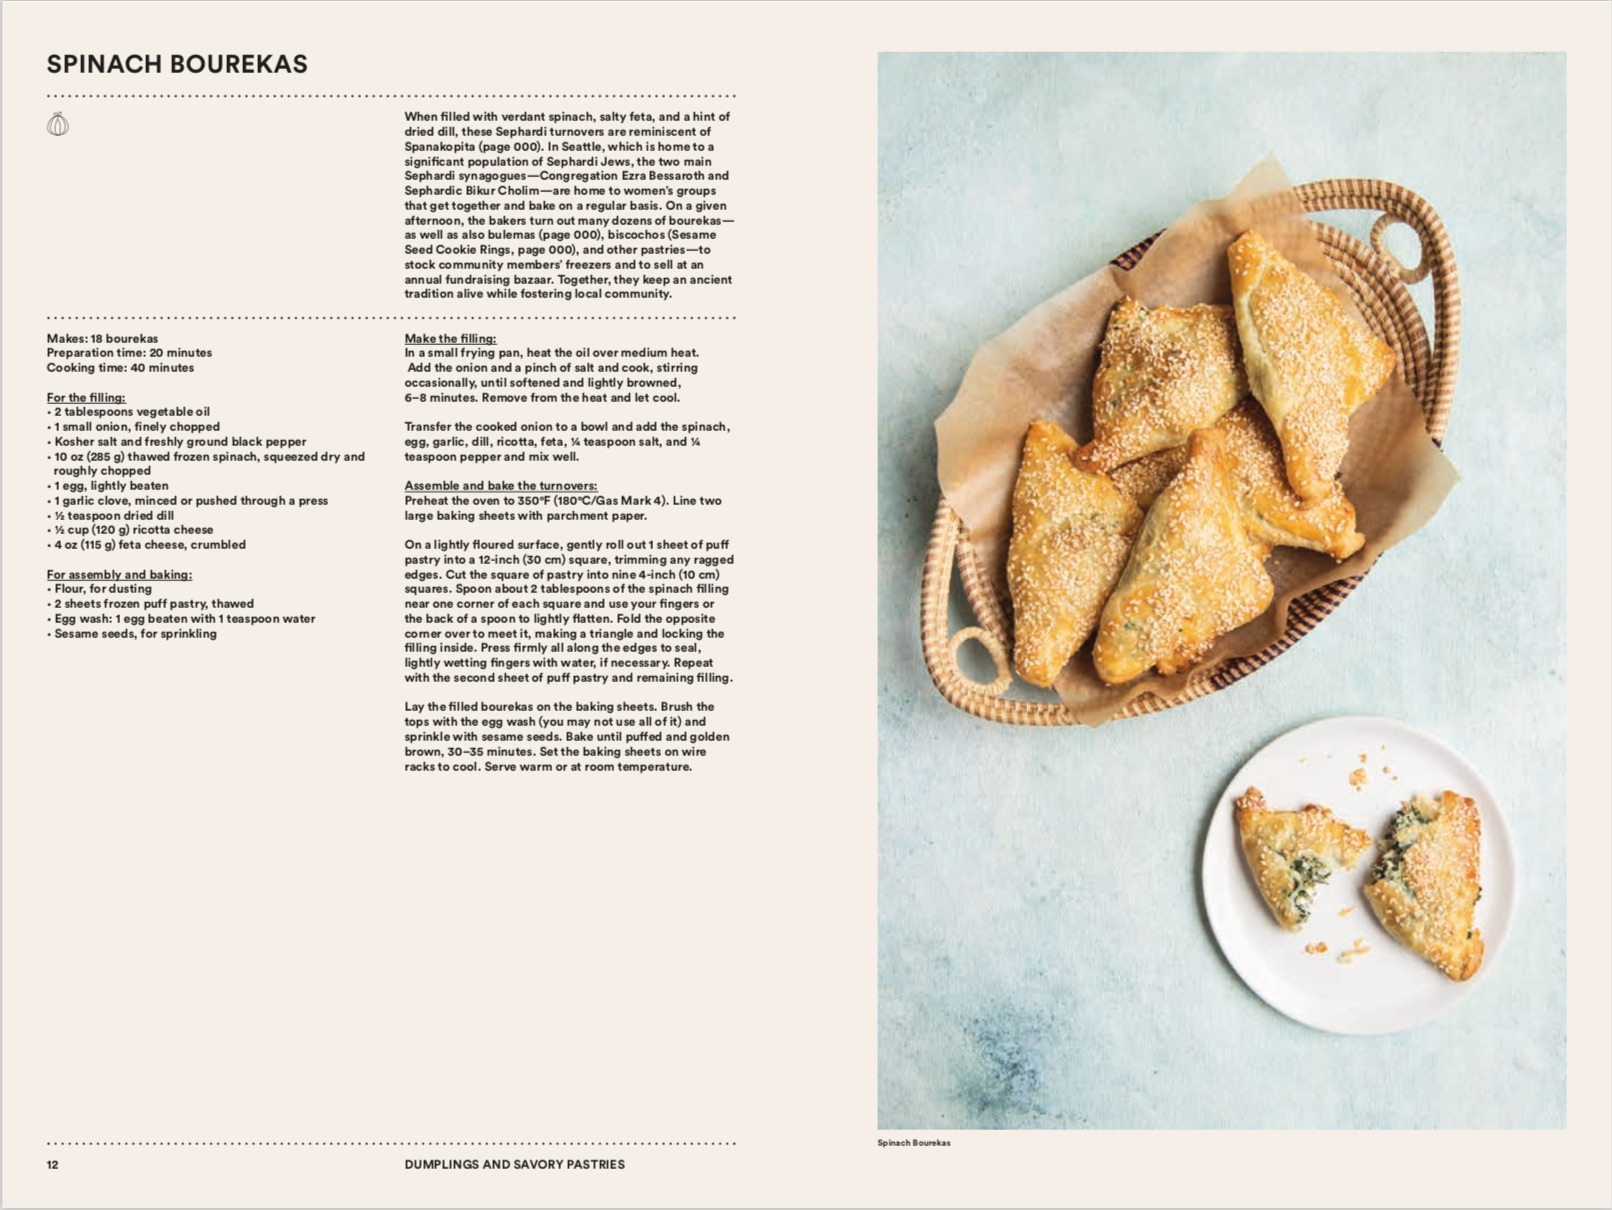 From The Jewish Cookbook copyright Phaidon 2019